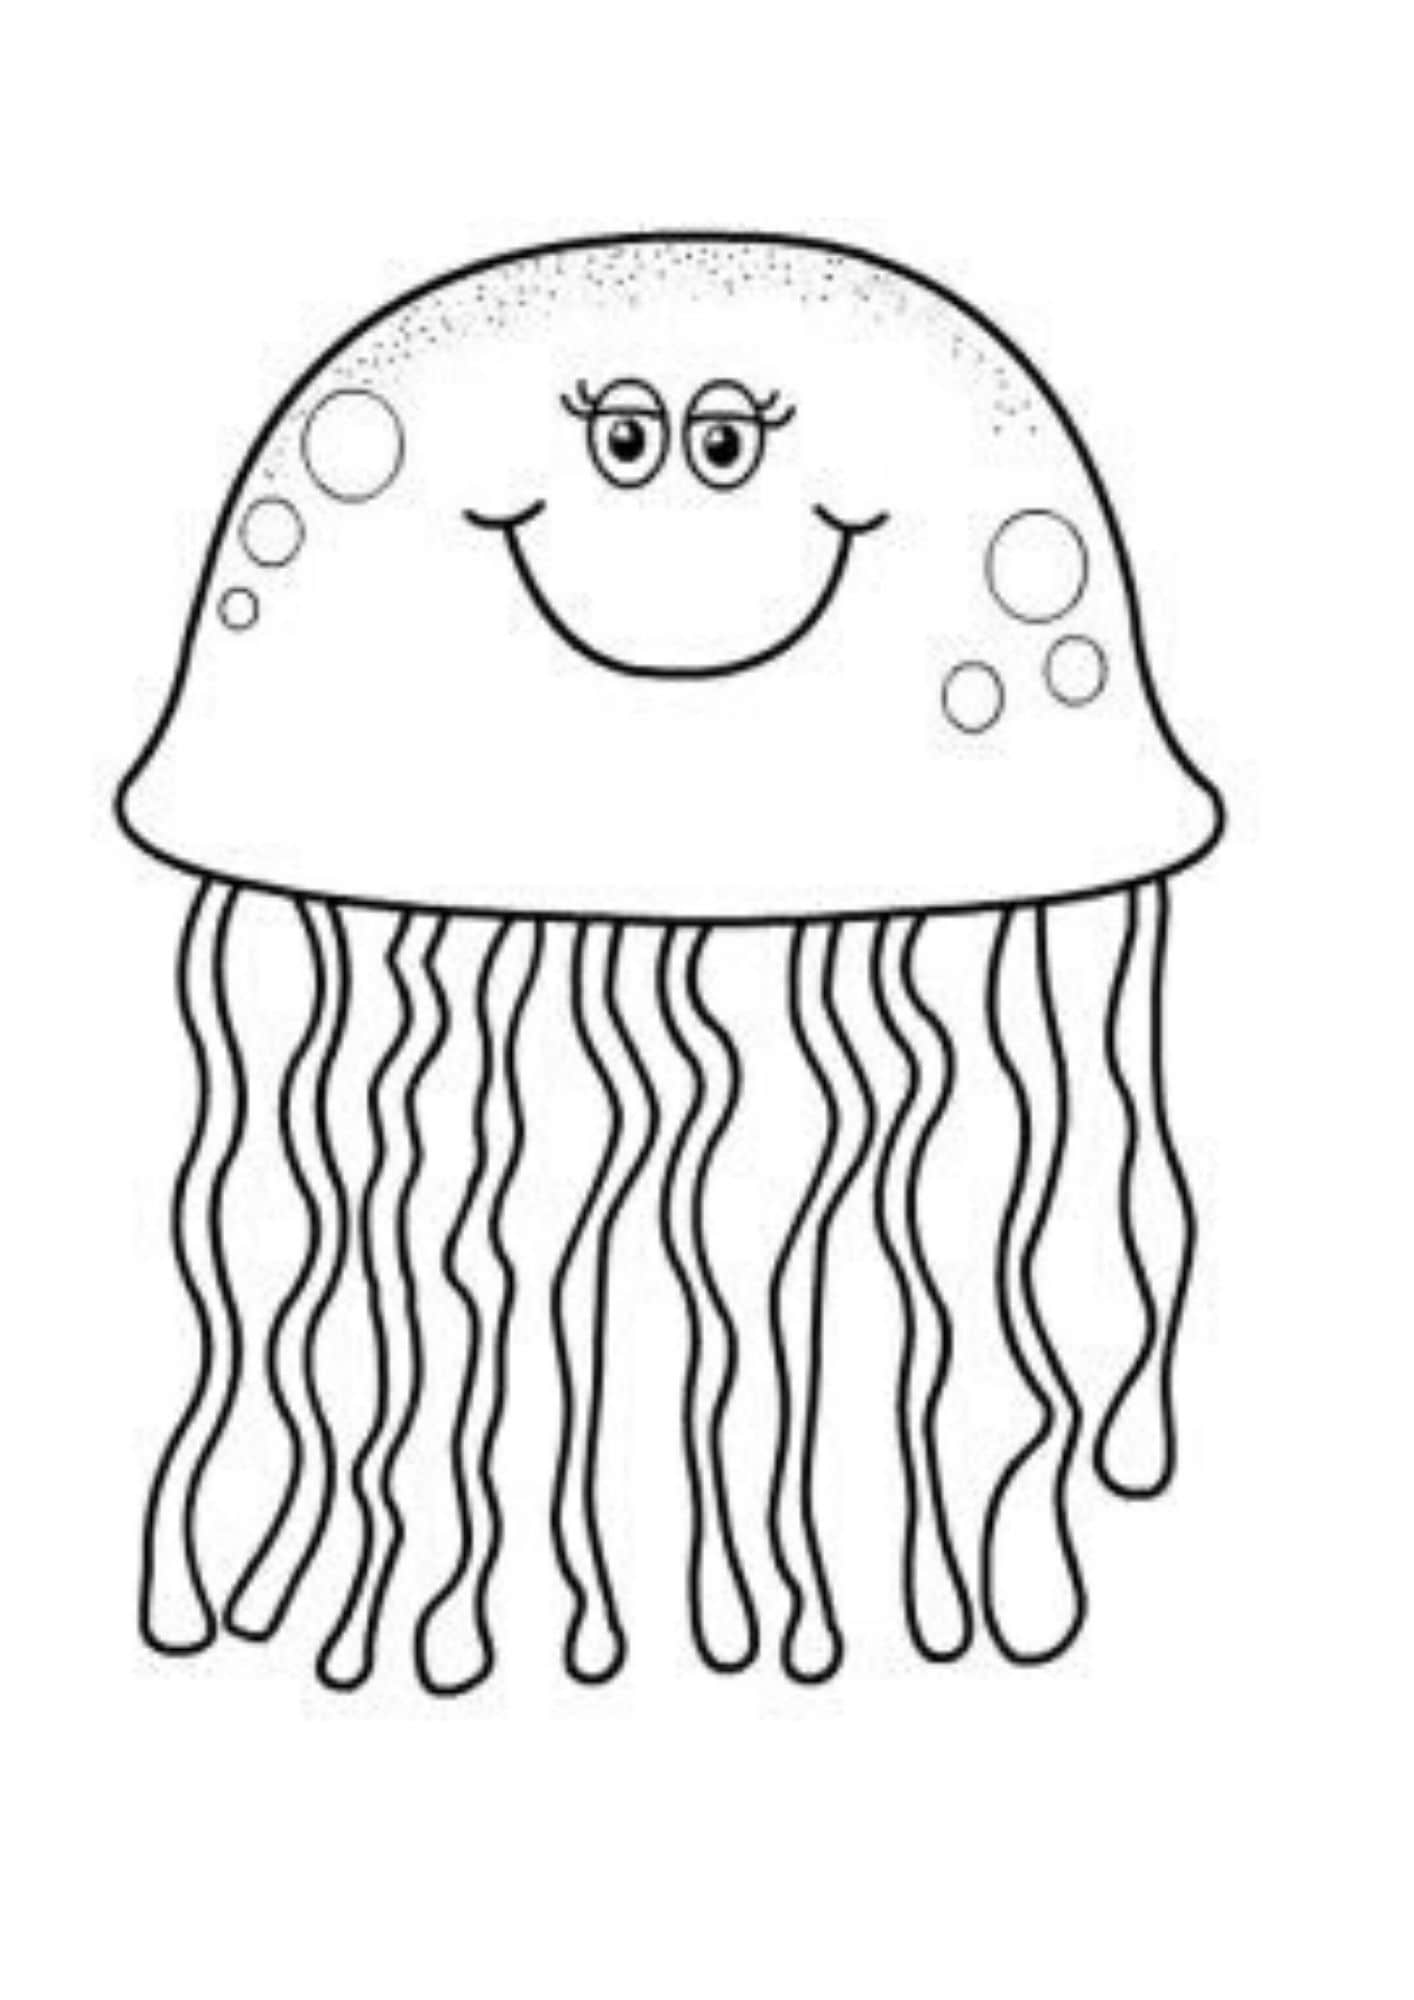 jellyfish drawing for kids best easy drawings for kids story handbook for drawing kids jellyfish